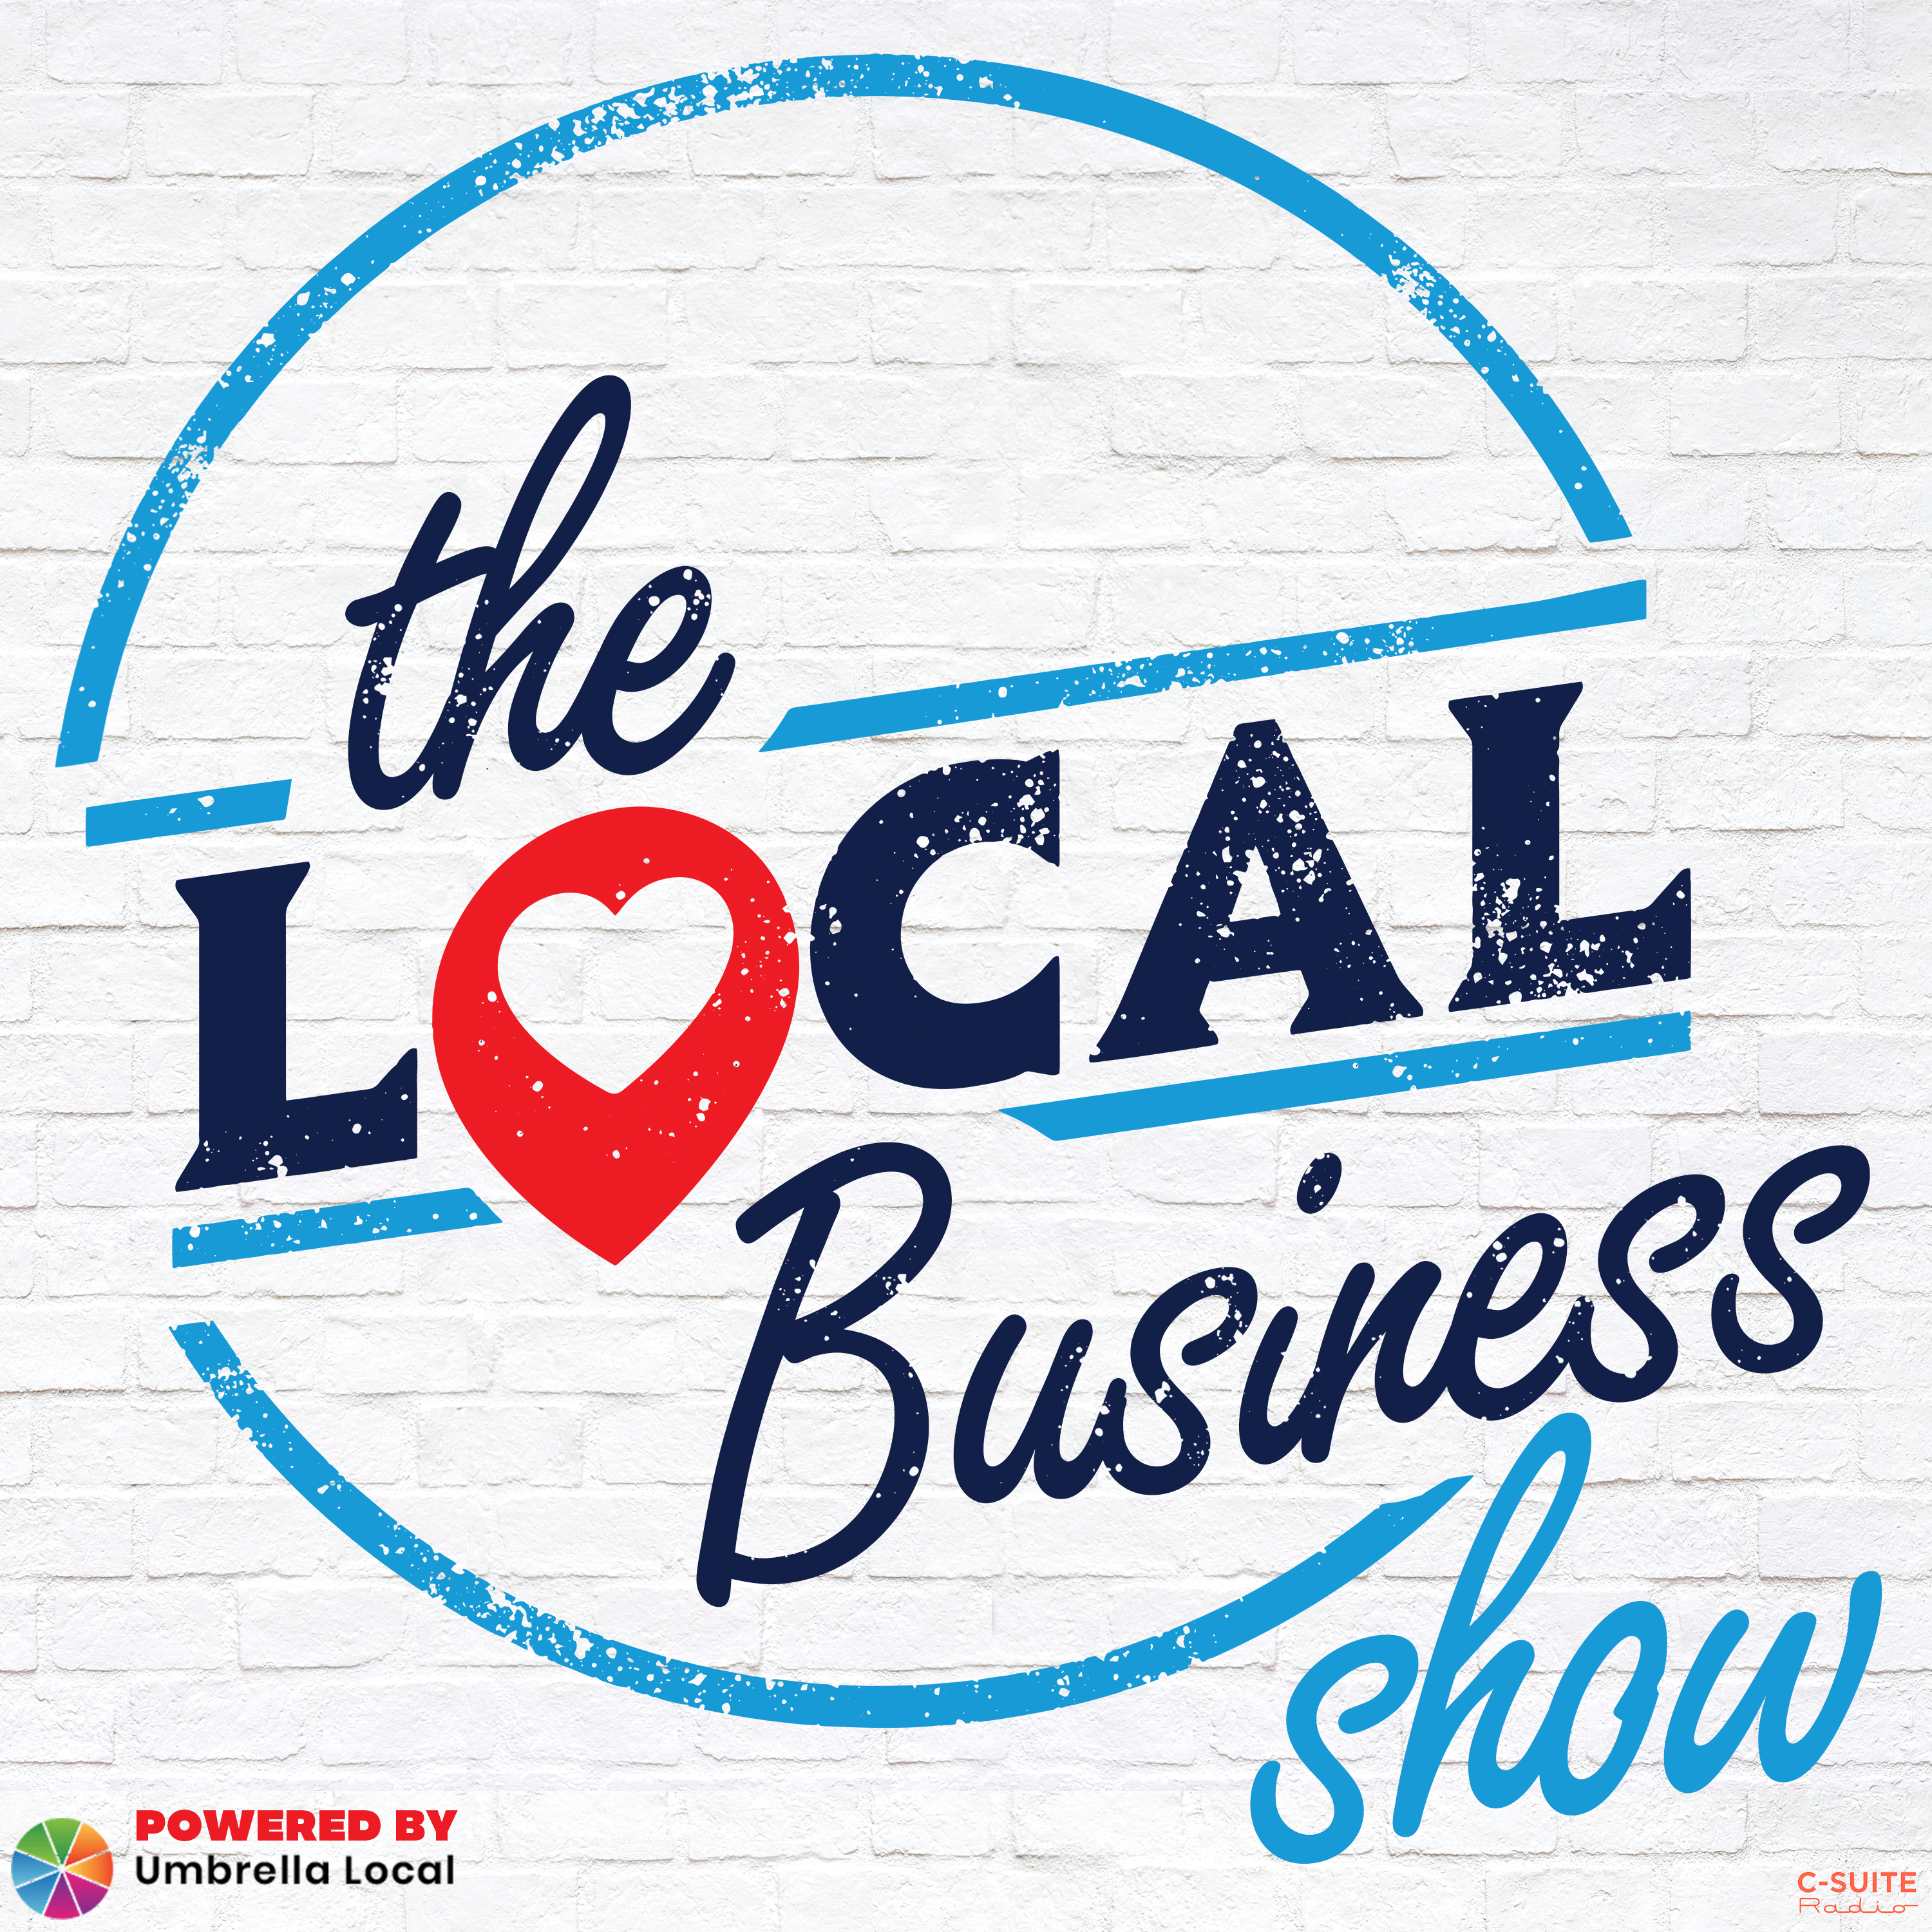 The Local Business Show